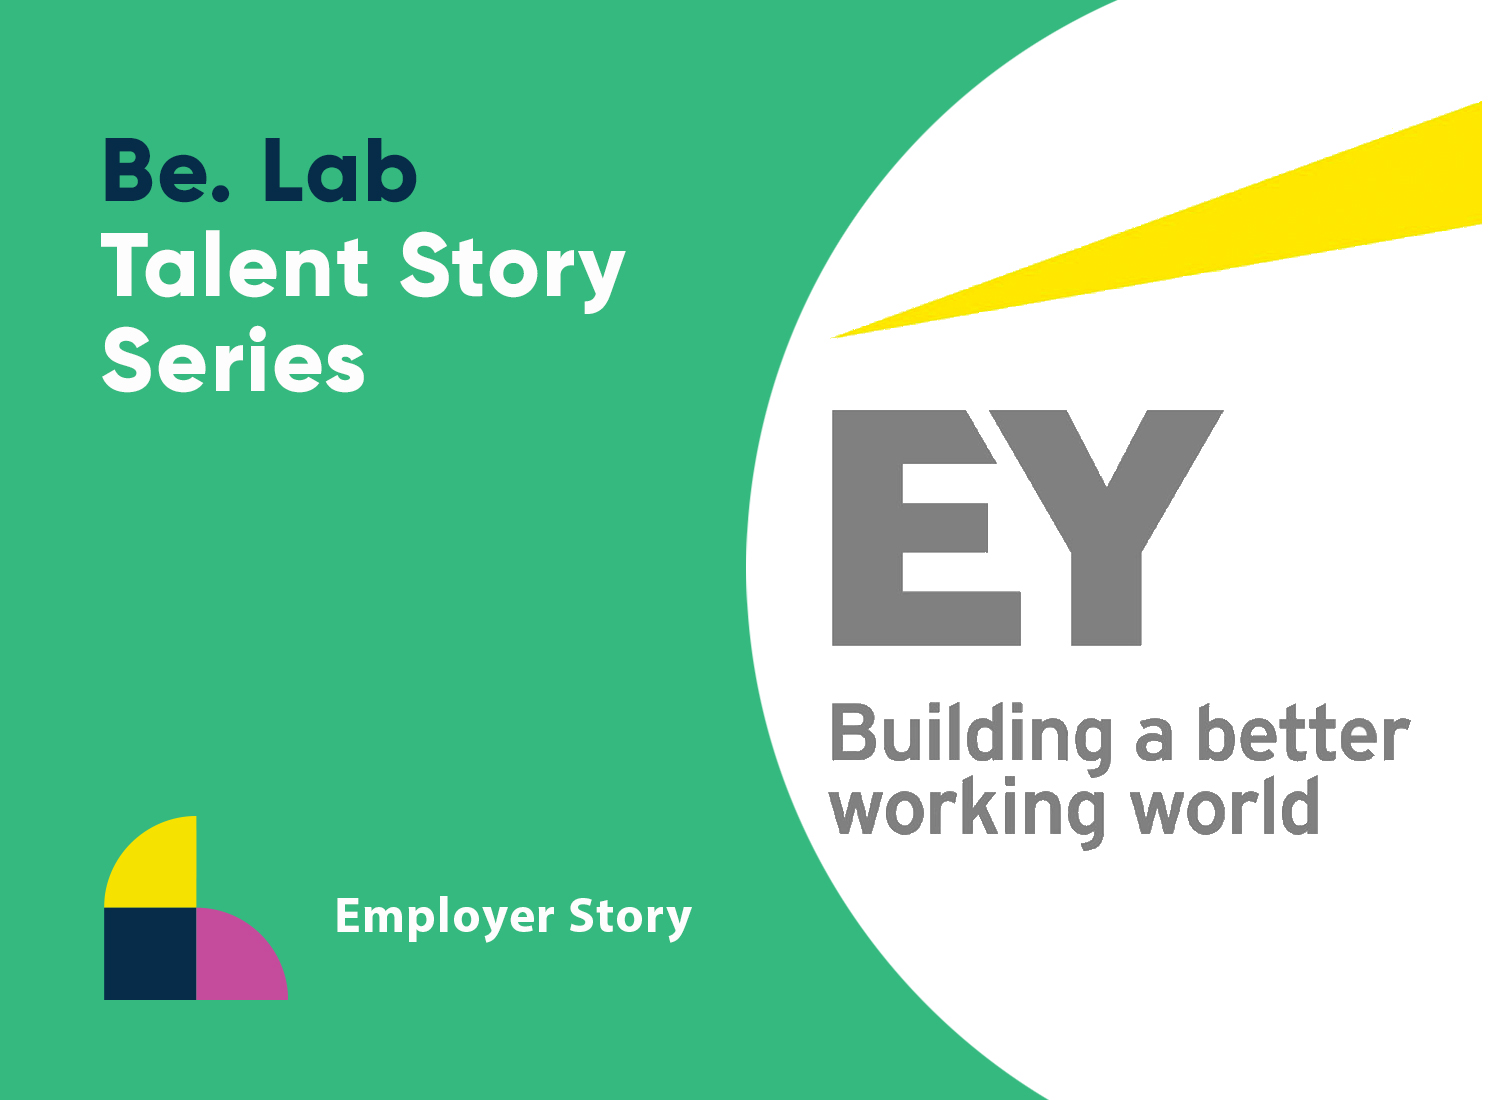 A bright green graphic that says: Be. Lab Talent Story Series. EY Building a Better Working World